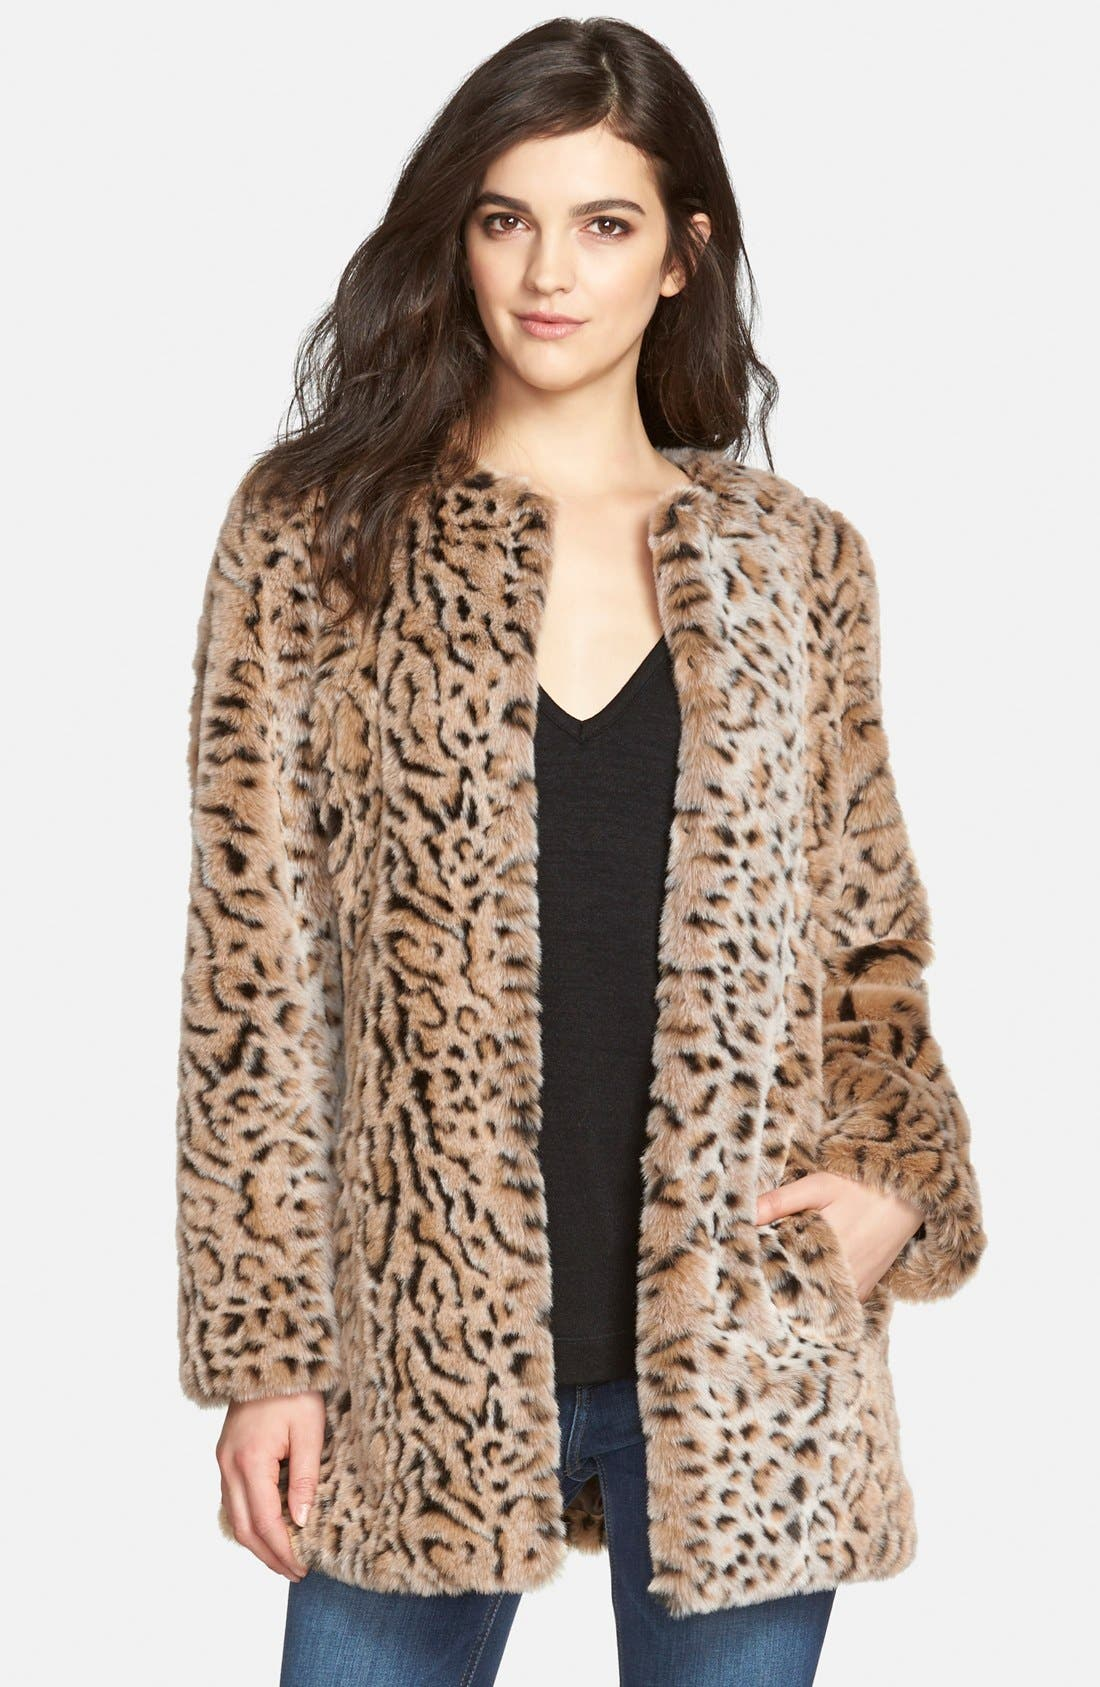 Alternate Image 1 Selected - Steve Madden Faux Fur Leopard Print Coat